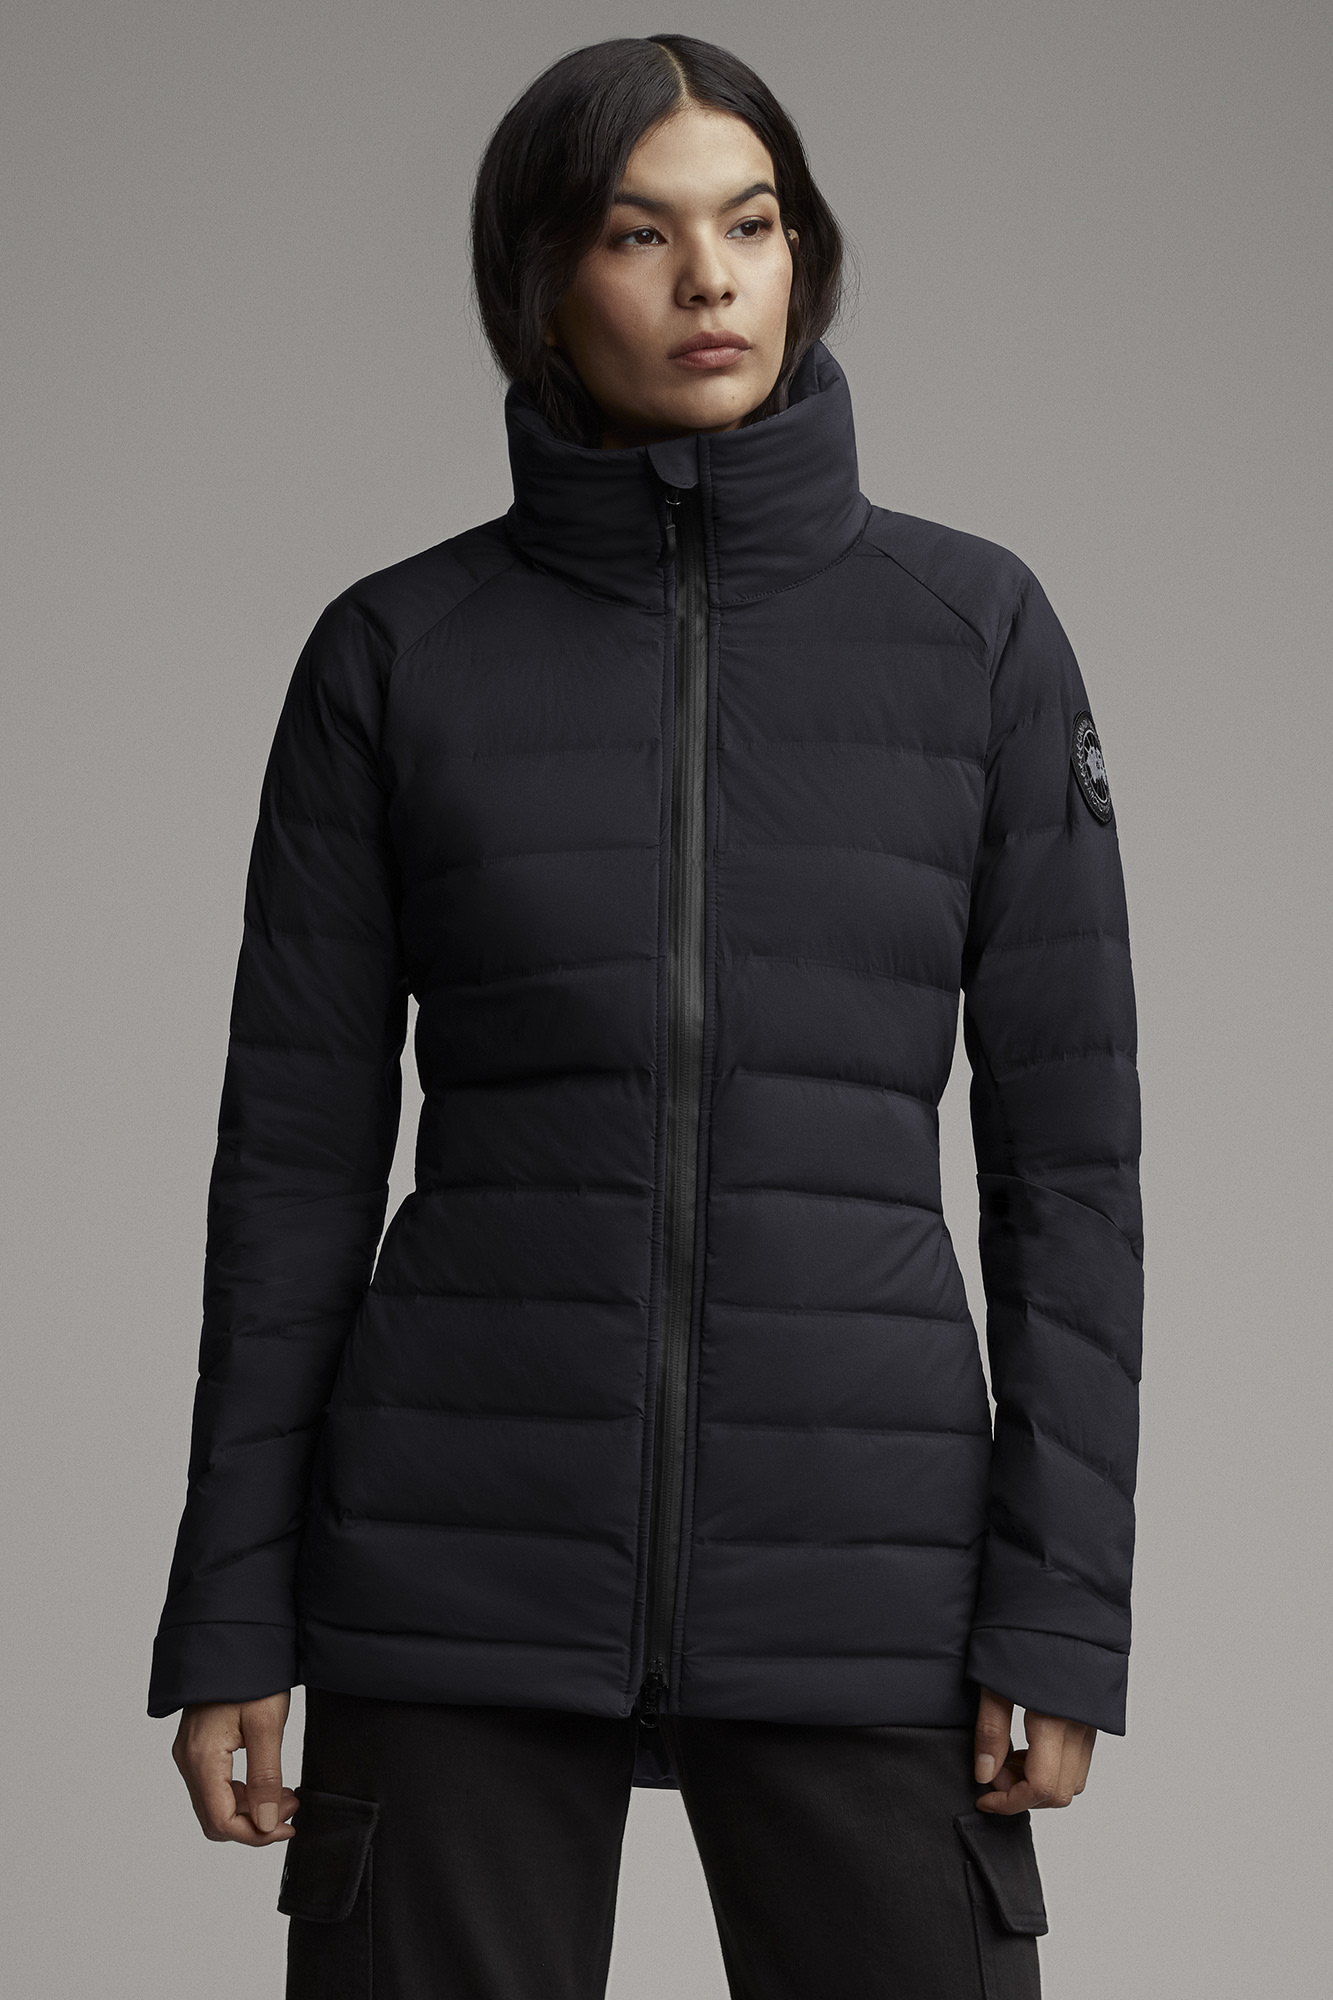 Women's HyBridge CW Down Jacket Black Label